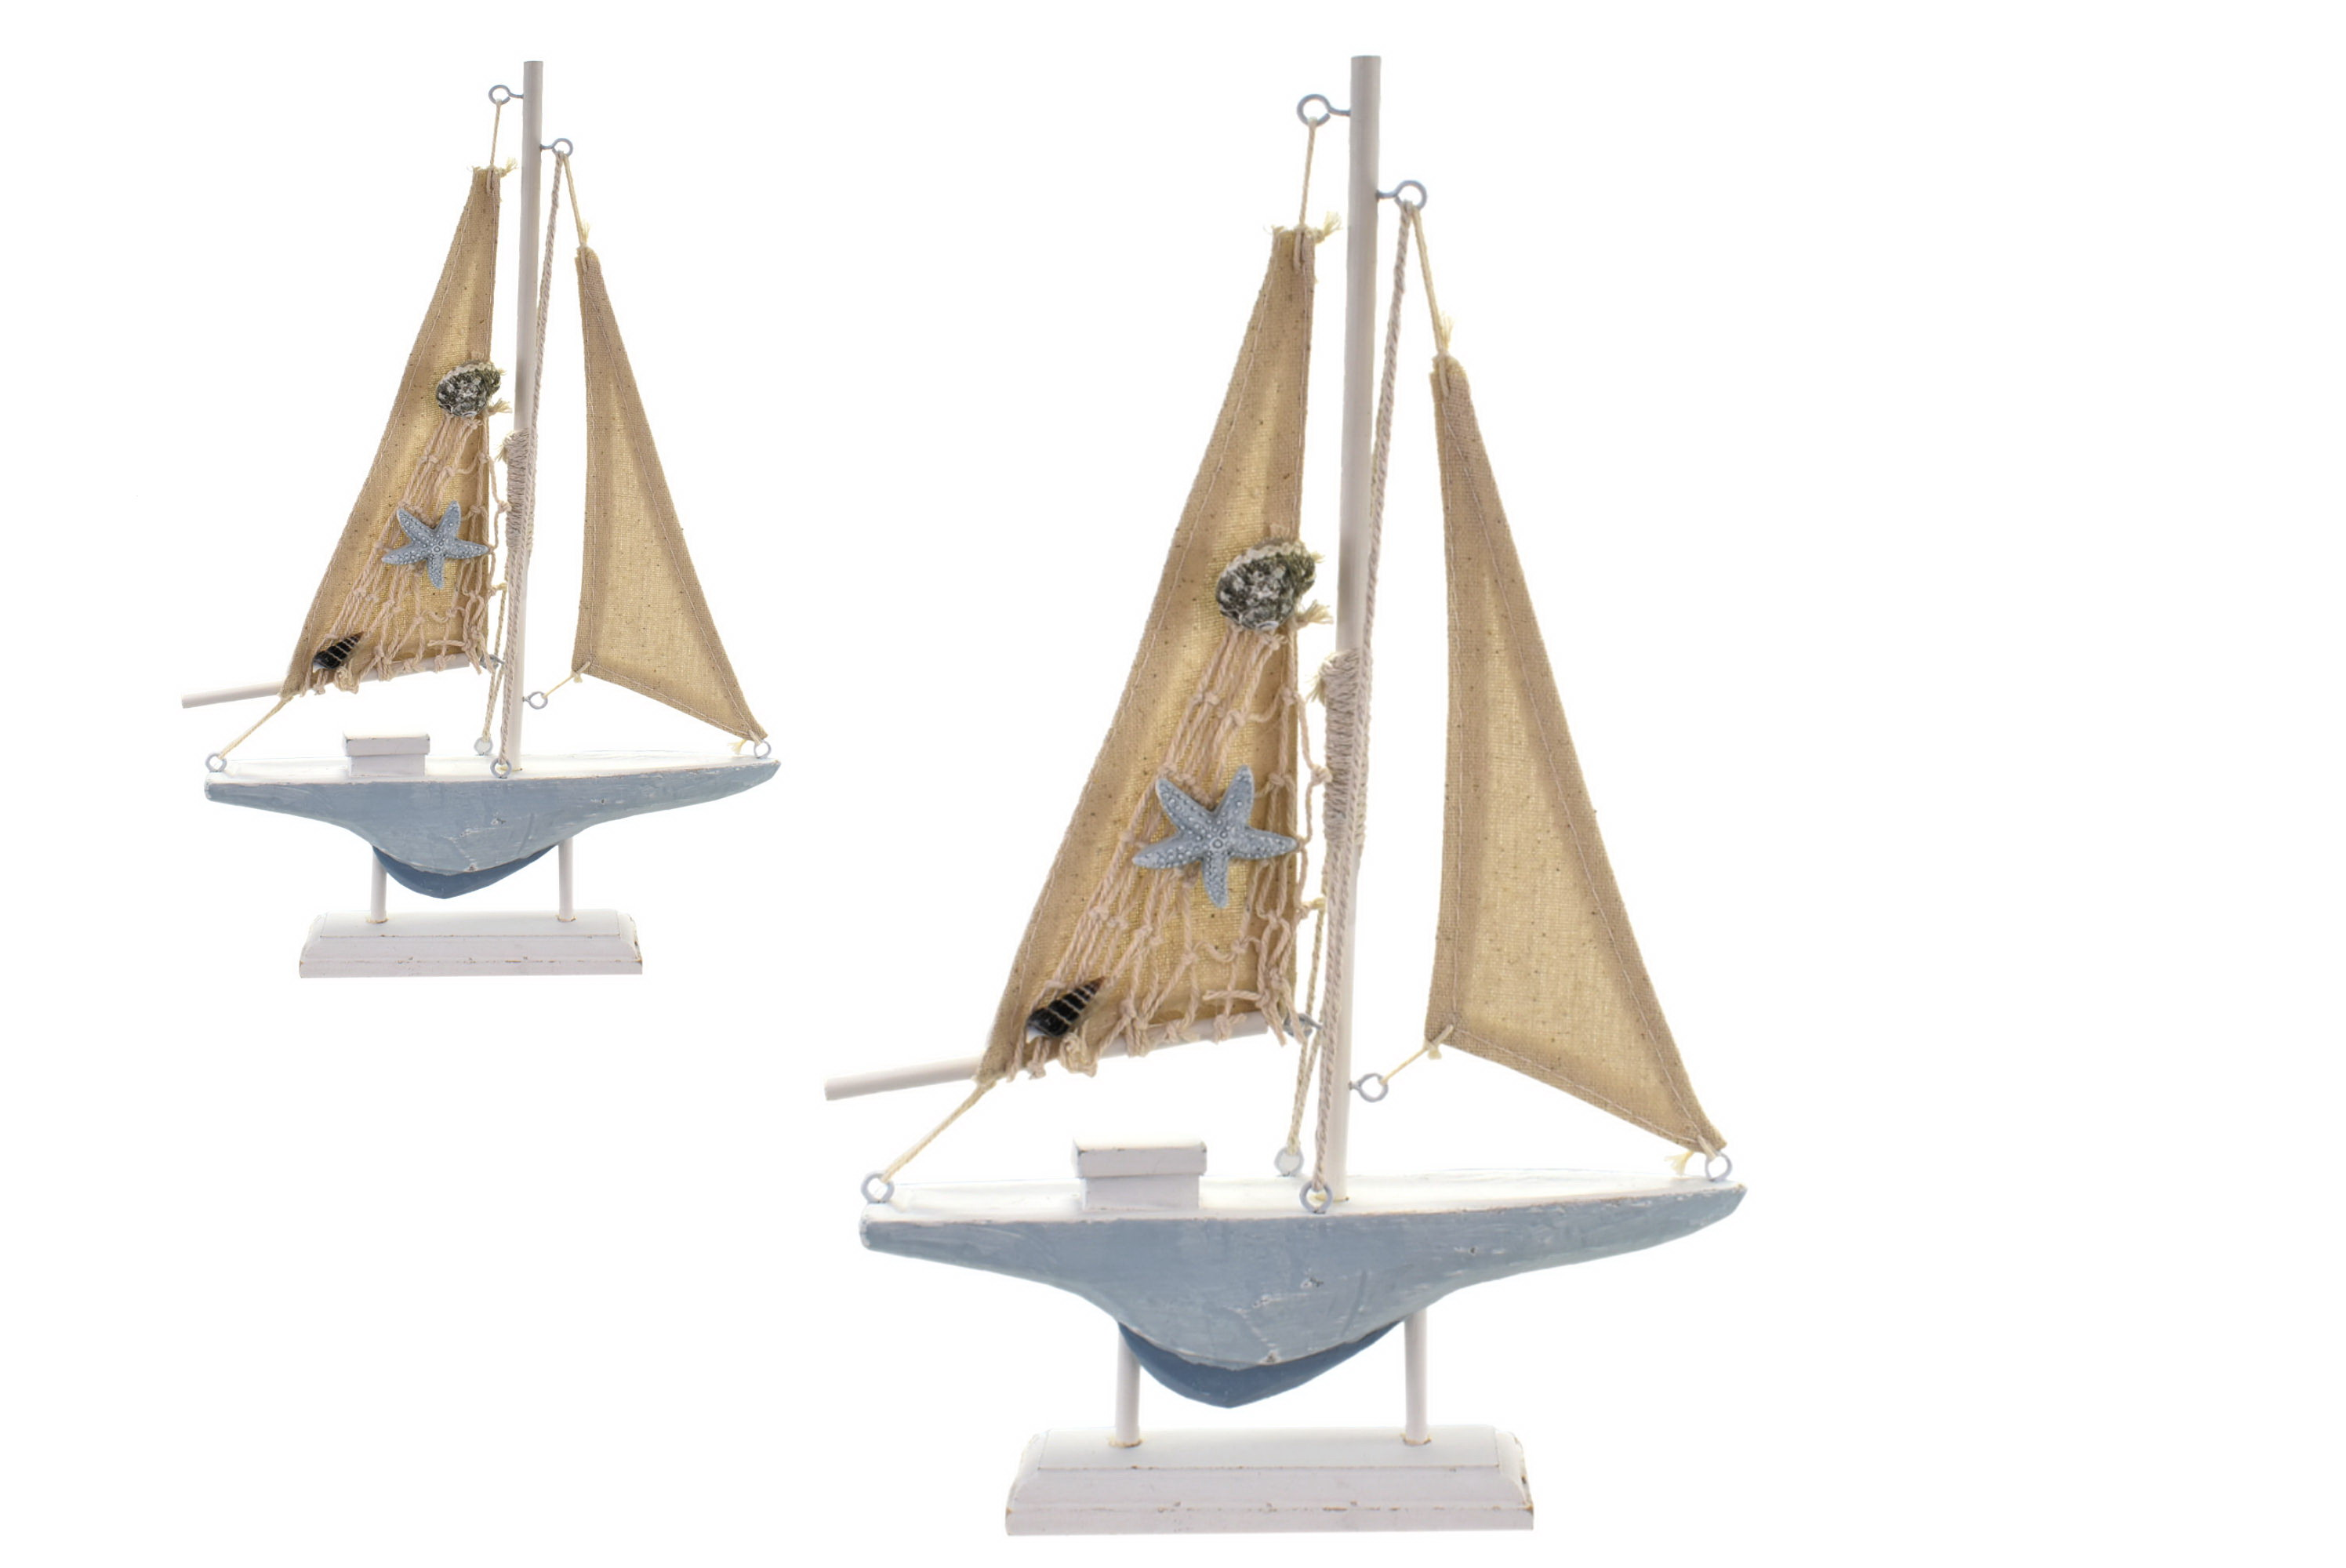 31cm Wooden Sailing Boat On Stand